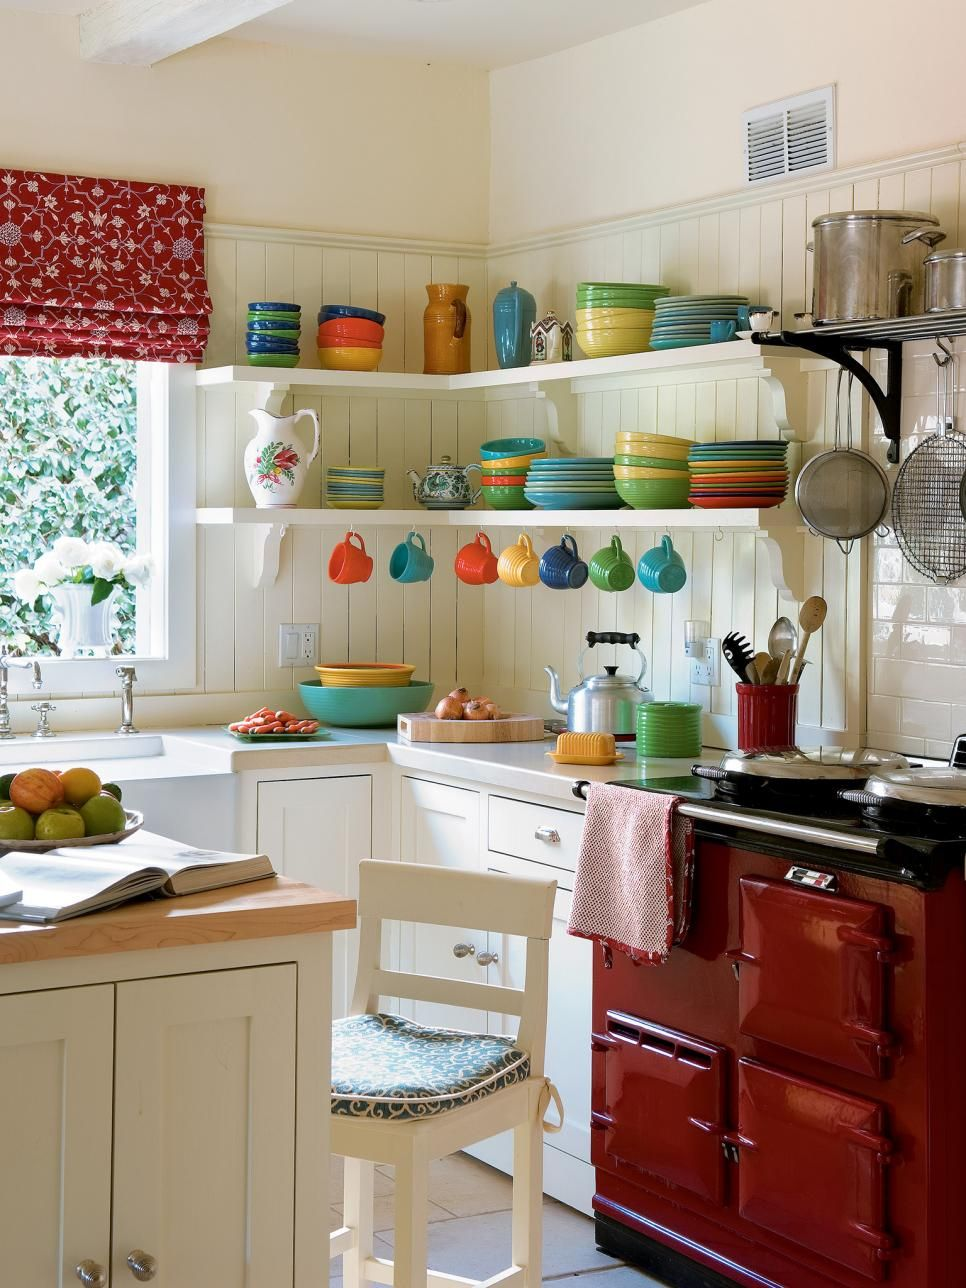 kitchen design ideas for small kitchens popular interior